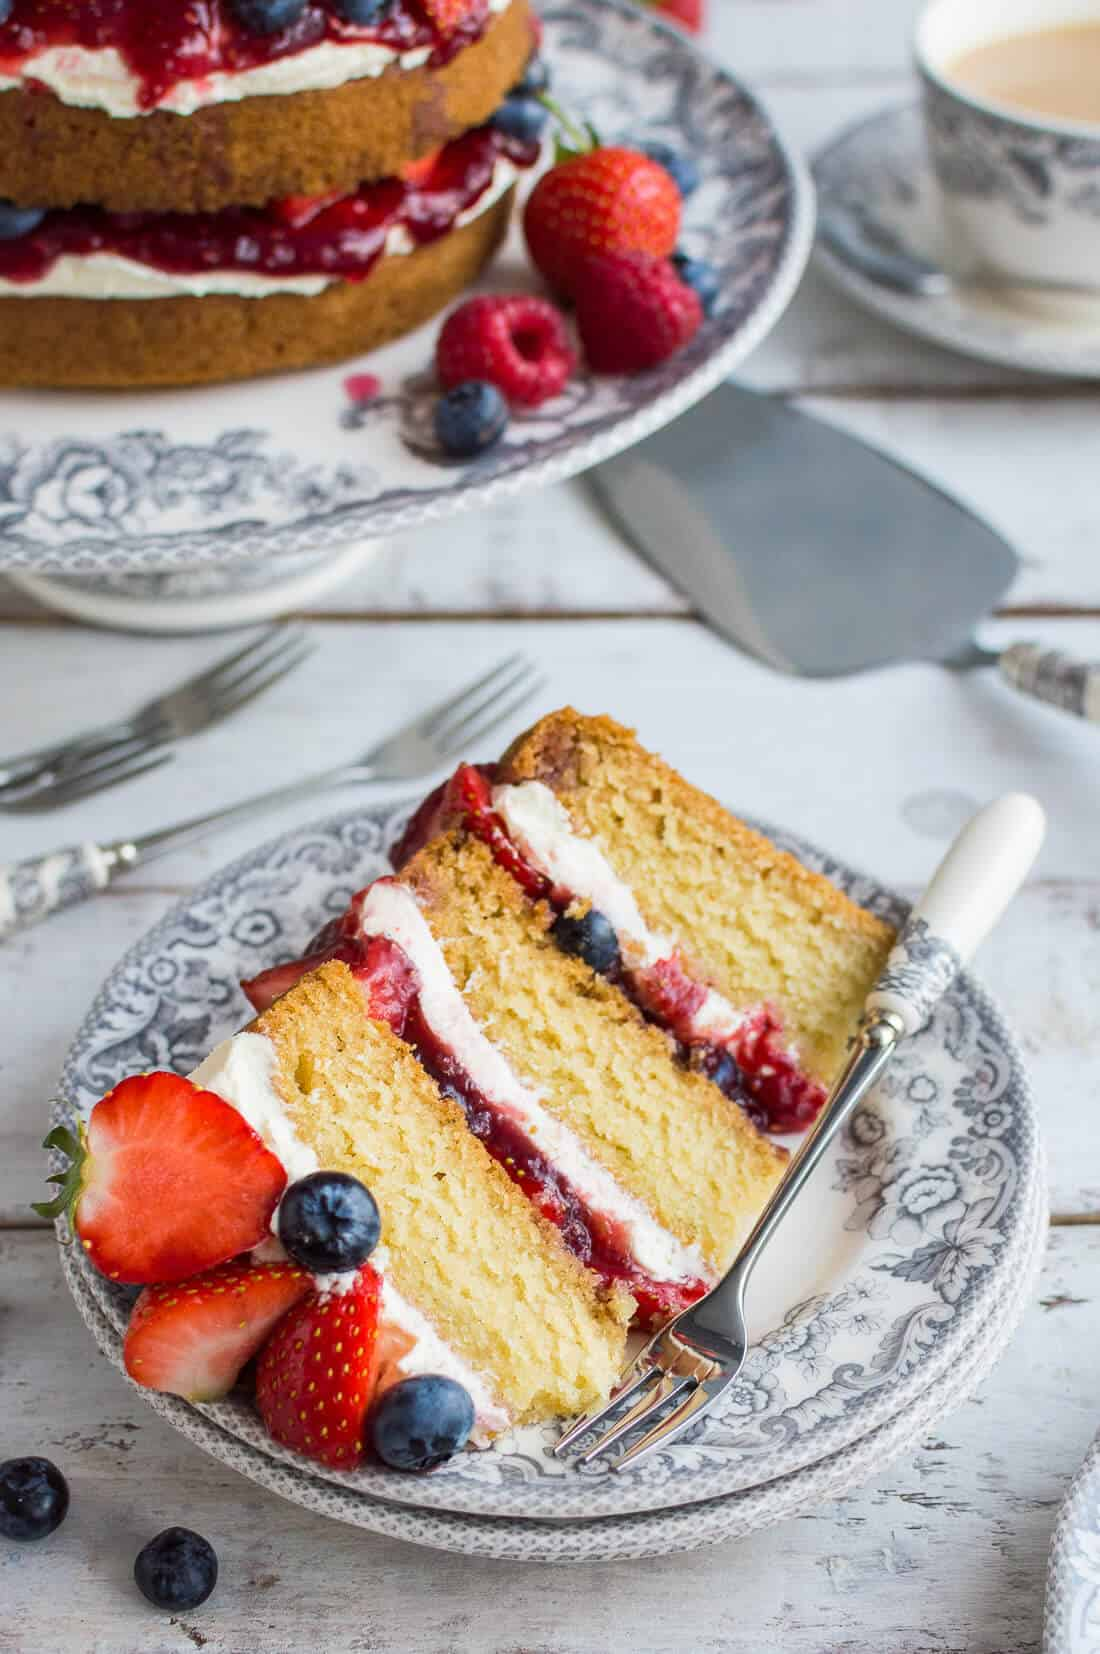 A slice of vegan vanilla cake with berries and jam on a grey Spode Delamere Rural plate with pastry fork.